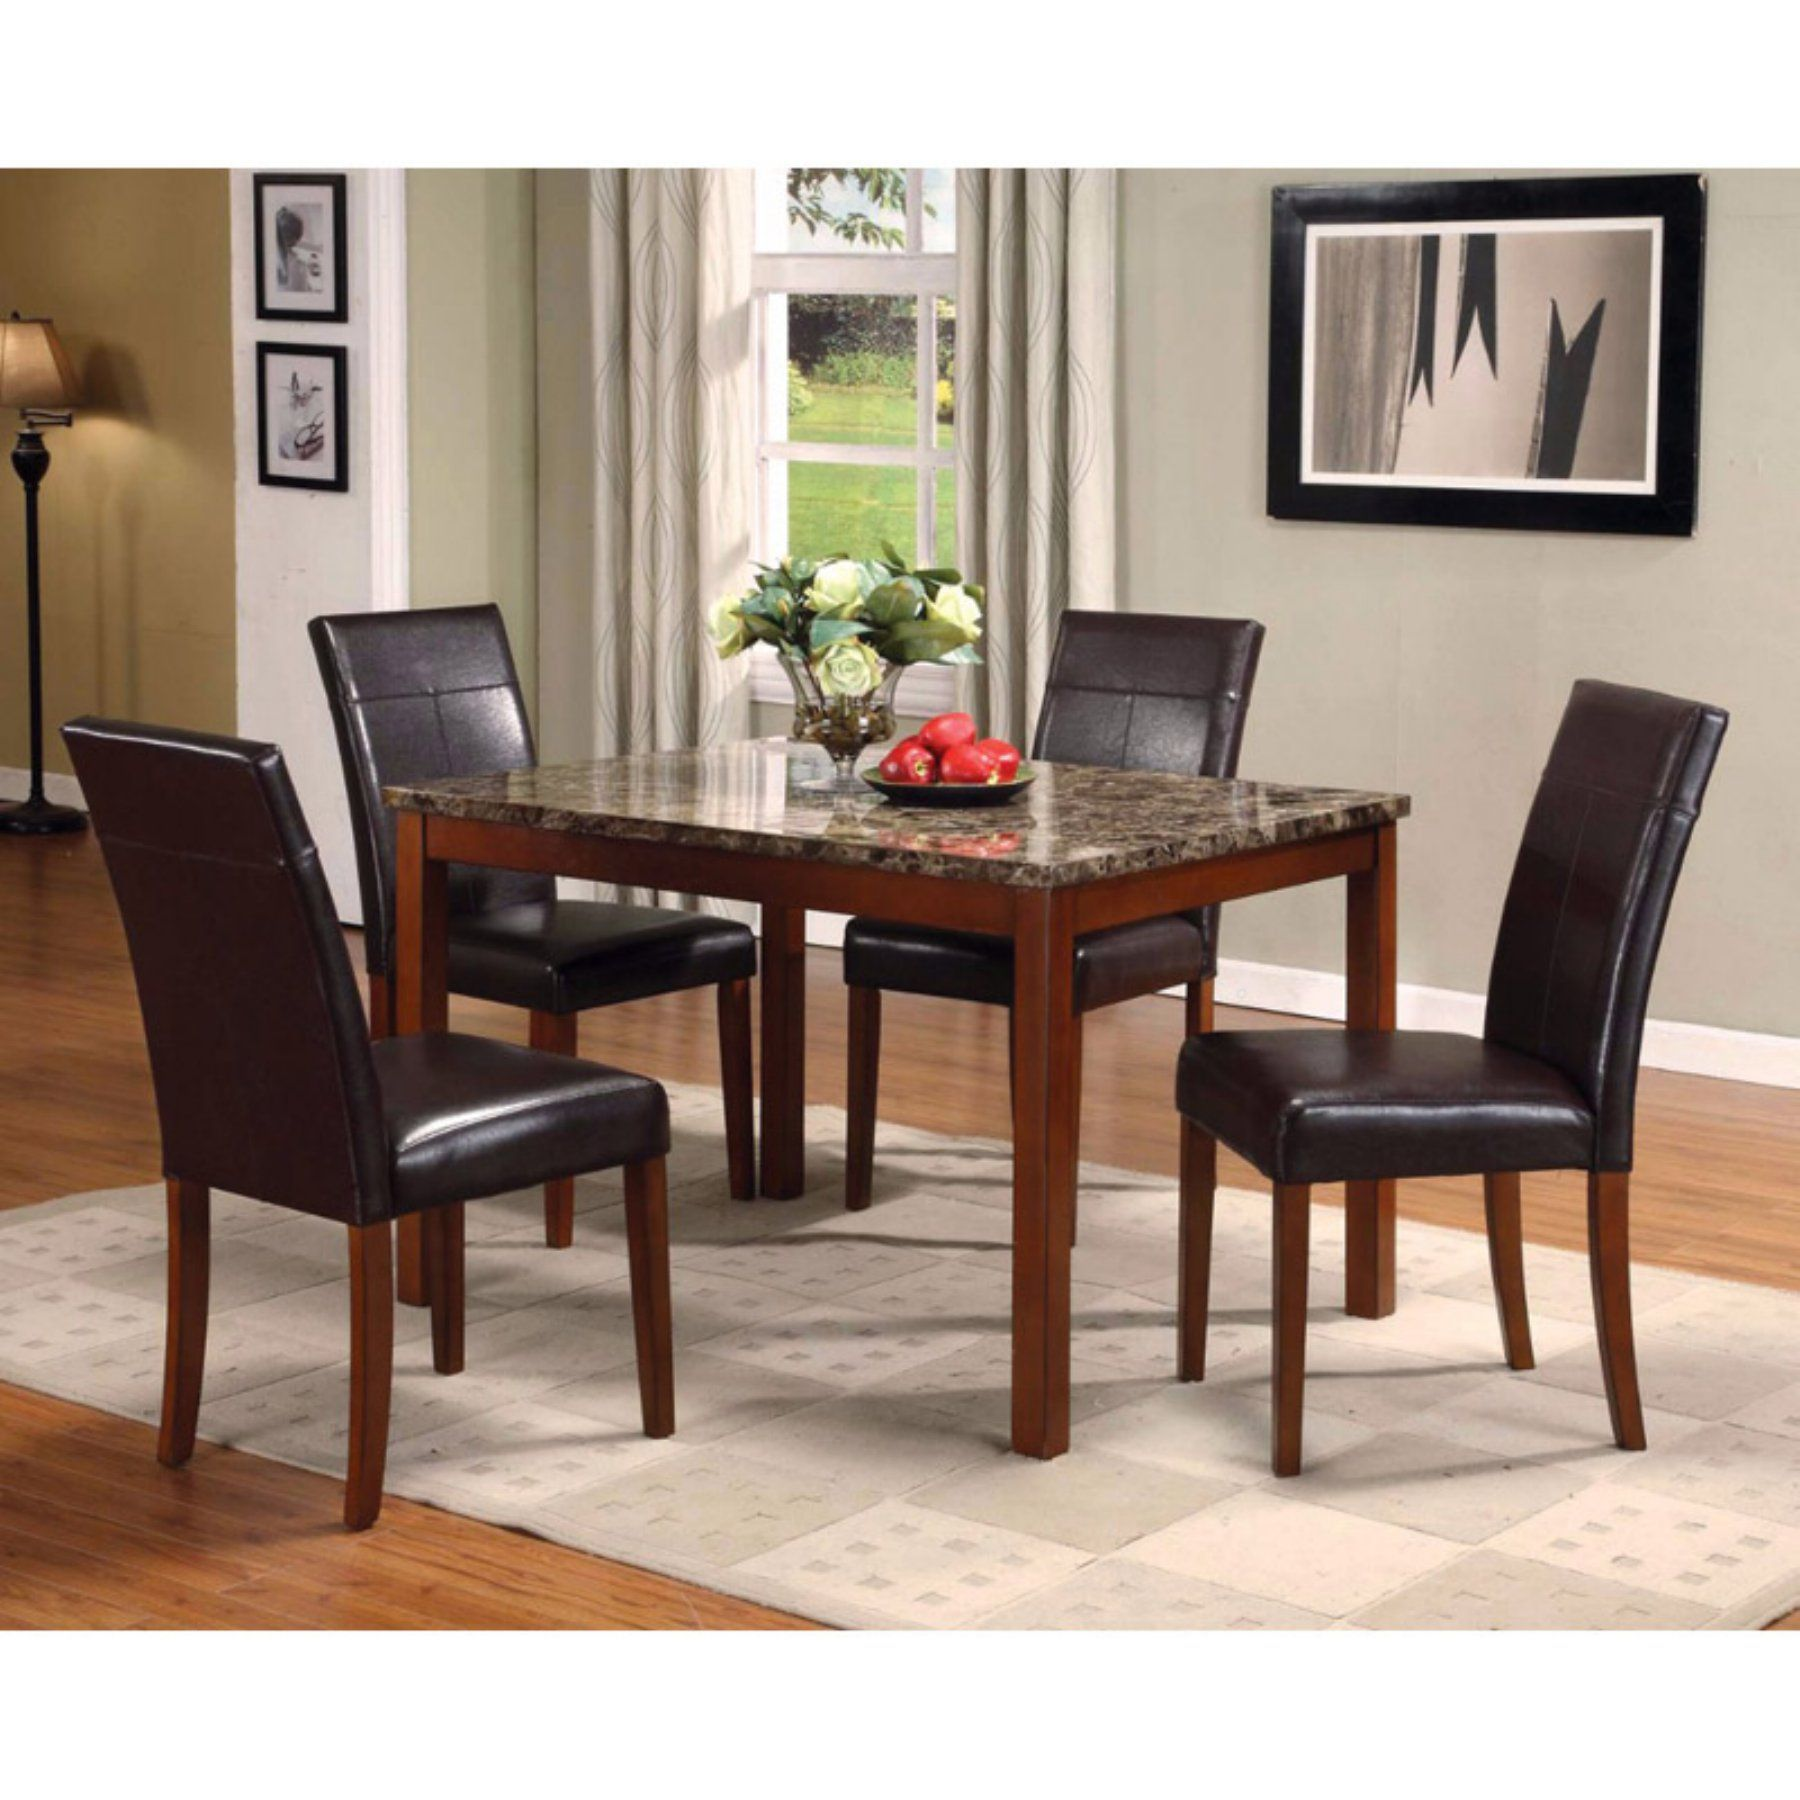 Benzara 5 Piece Faux Marble Dining Table Set Marble Dining Table